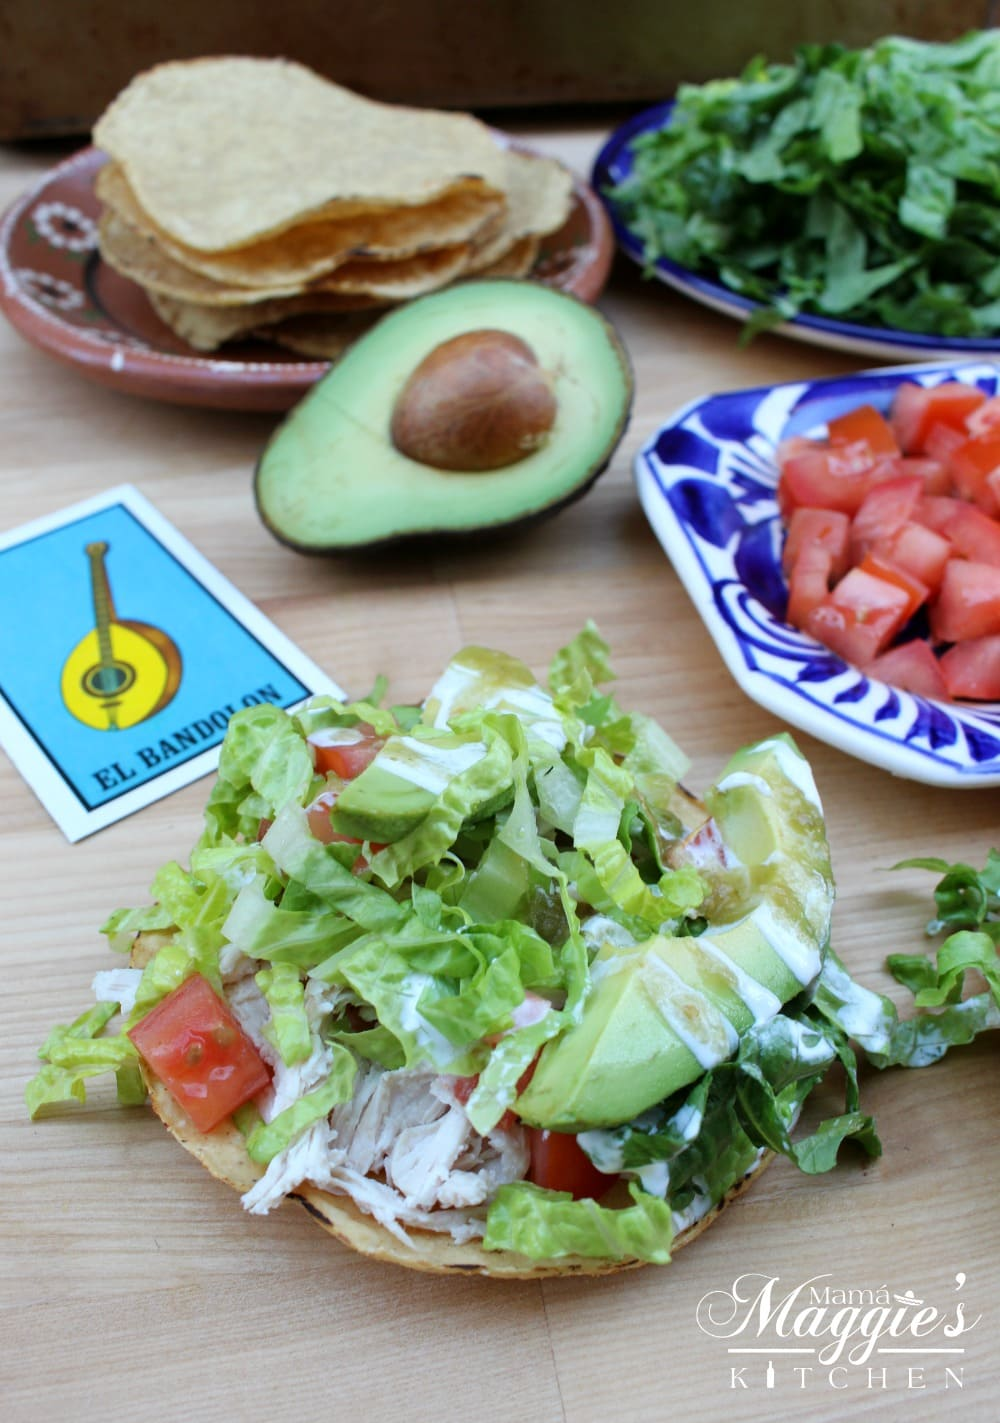 Tostadas de Pollo (Chicken Tostada) surrounded by its ingredient and Loteria cards.